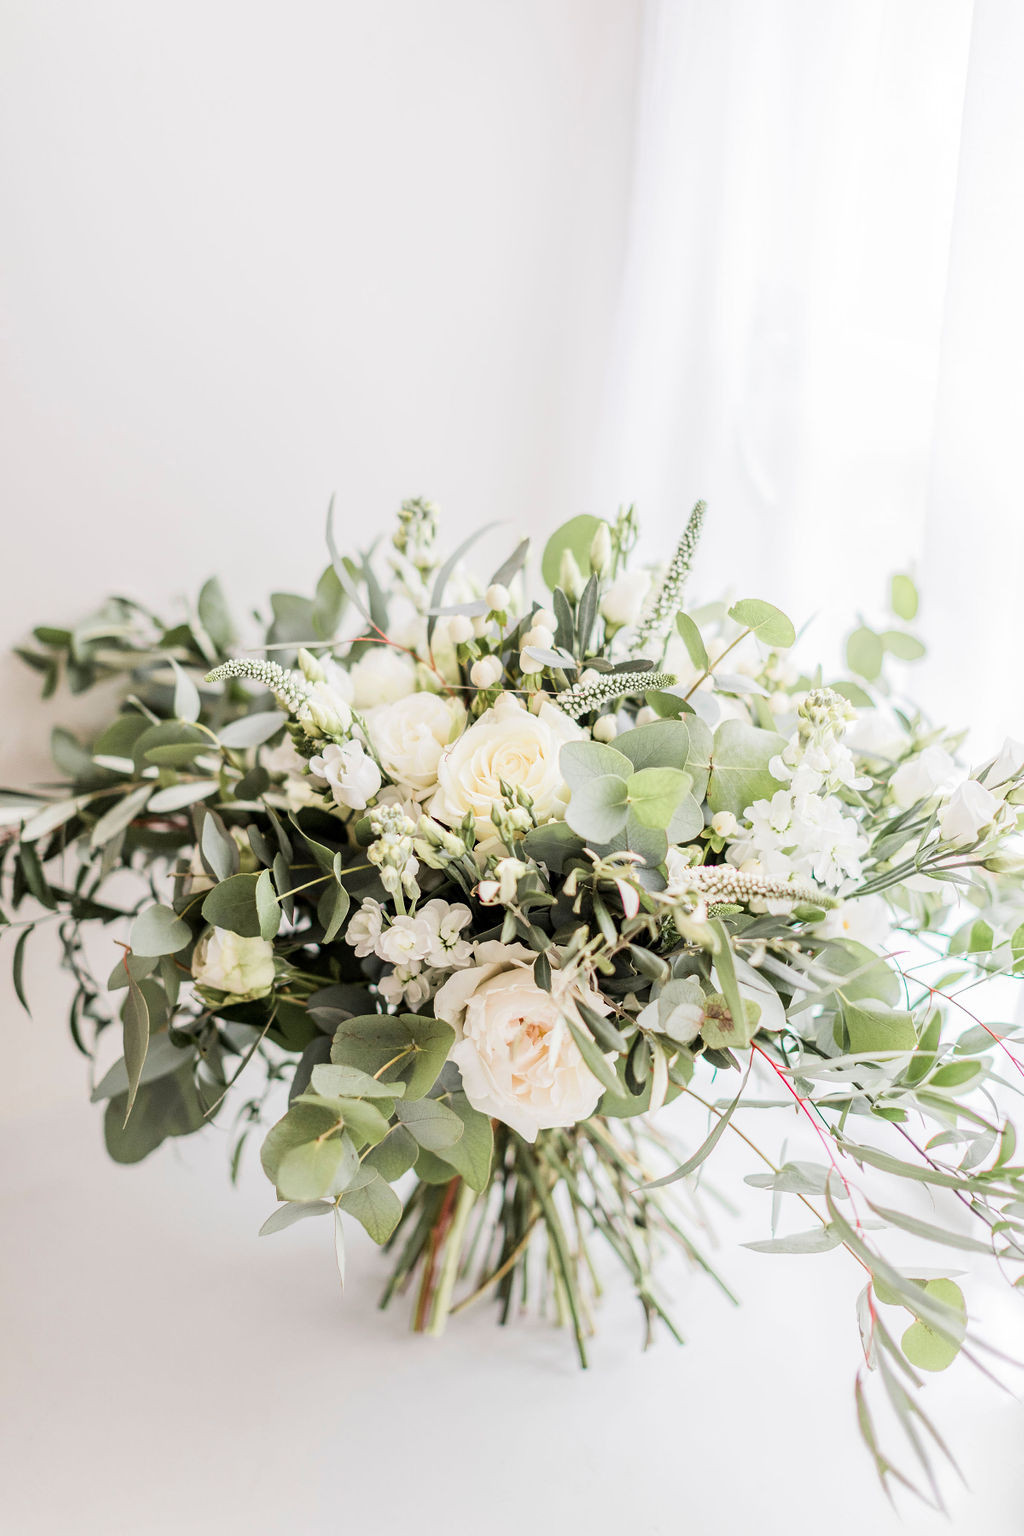 Sprig And Thistle Newcastle Wedding Florist And Decorative Hire